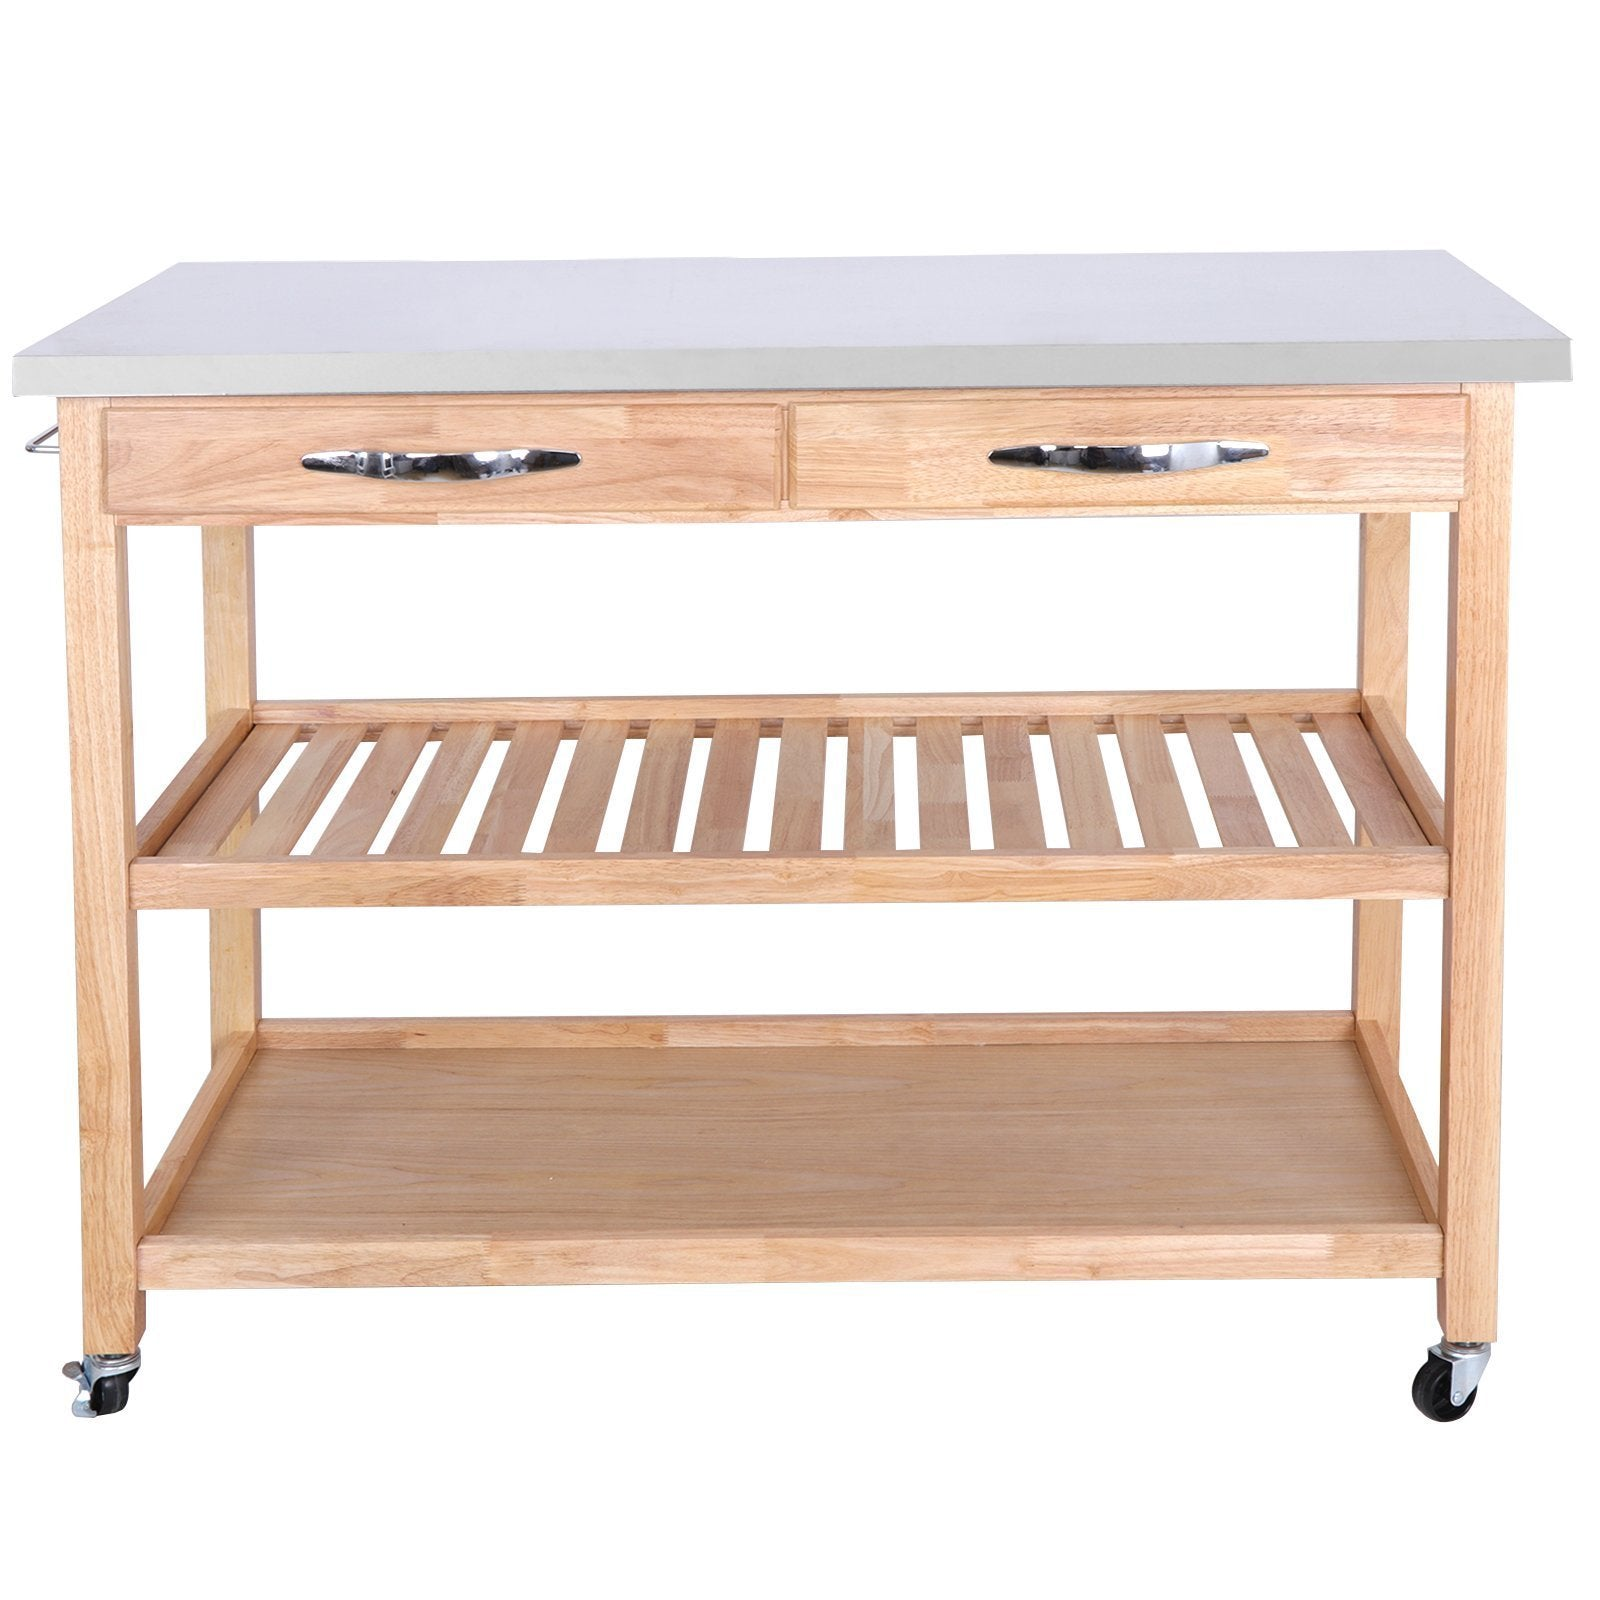 Get zenstyle 3 tier rolling kitchen island utility wood serving cart stainless steel countertop kitchen storage cart w shelves drawers towel rack